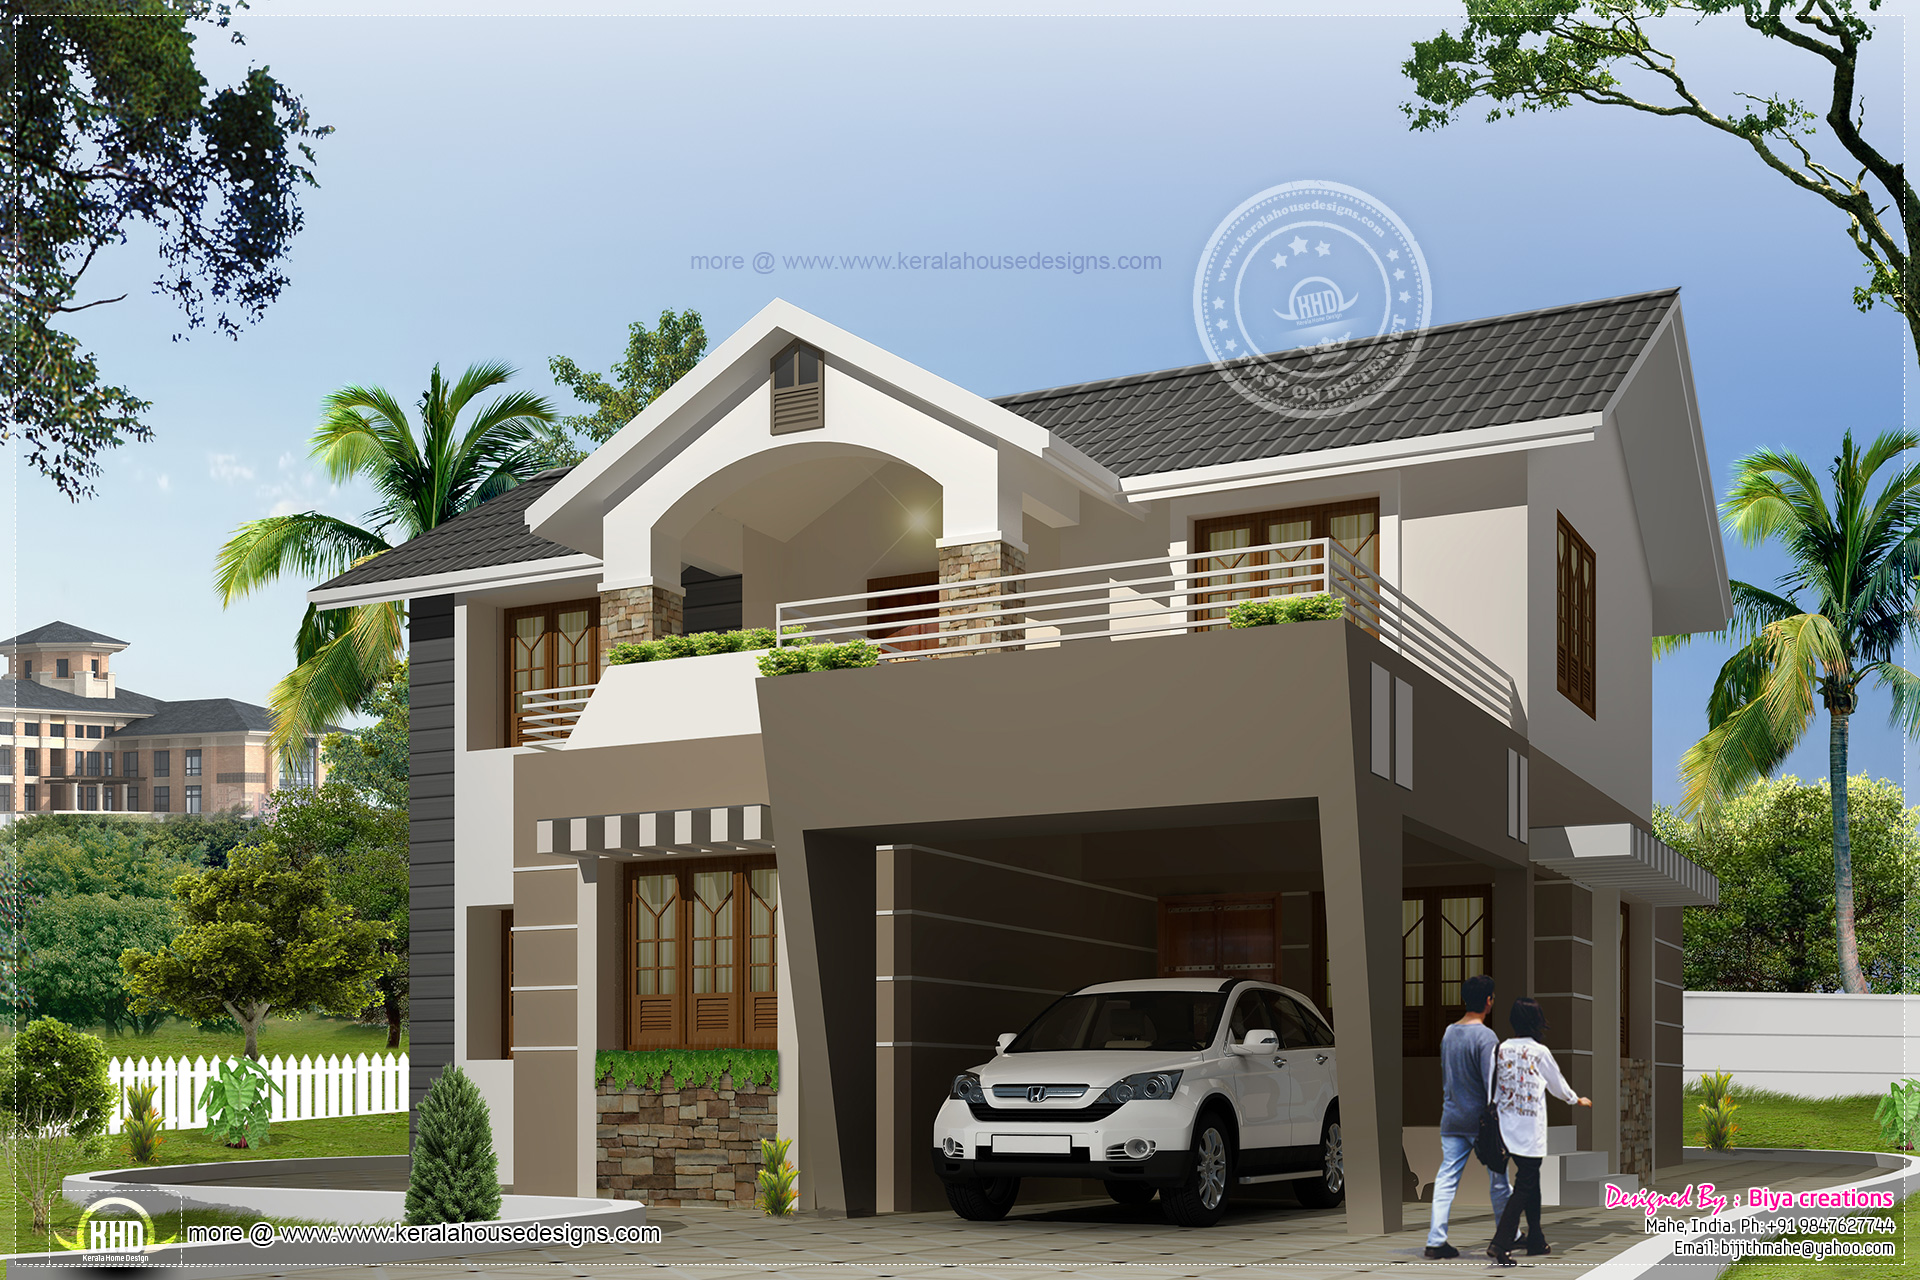 2050 modern exterior home kerala home design and for Home outside design images